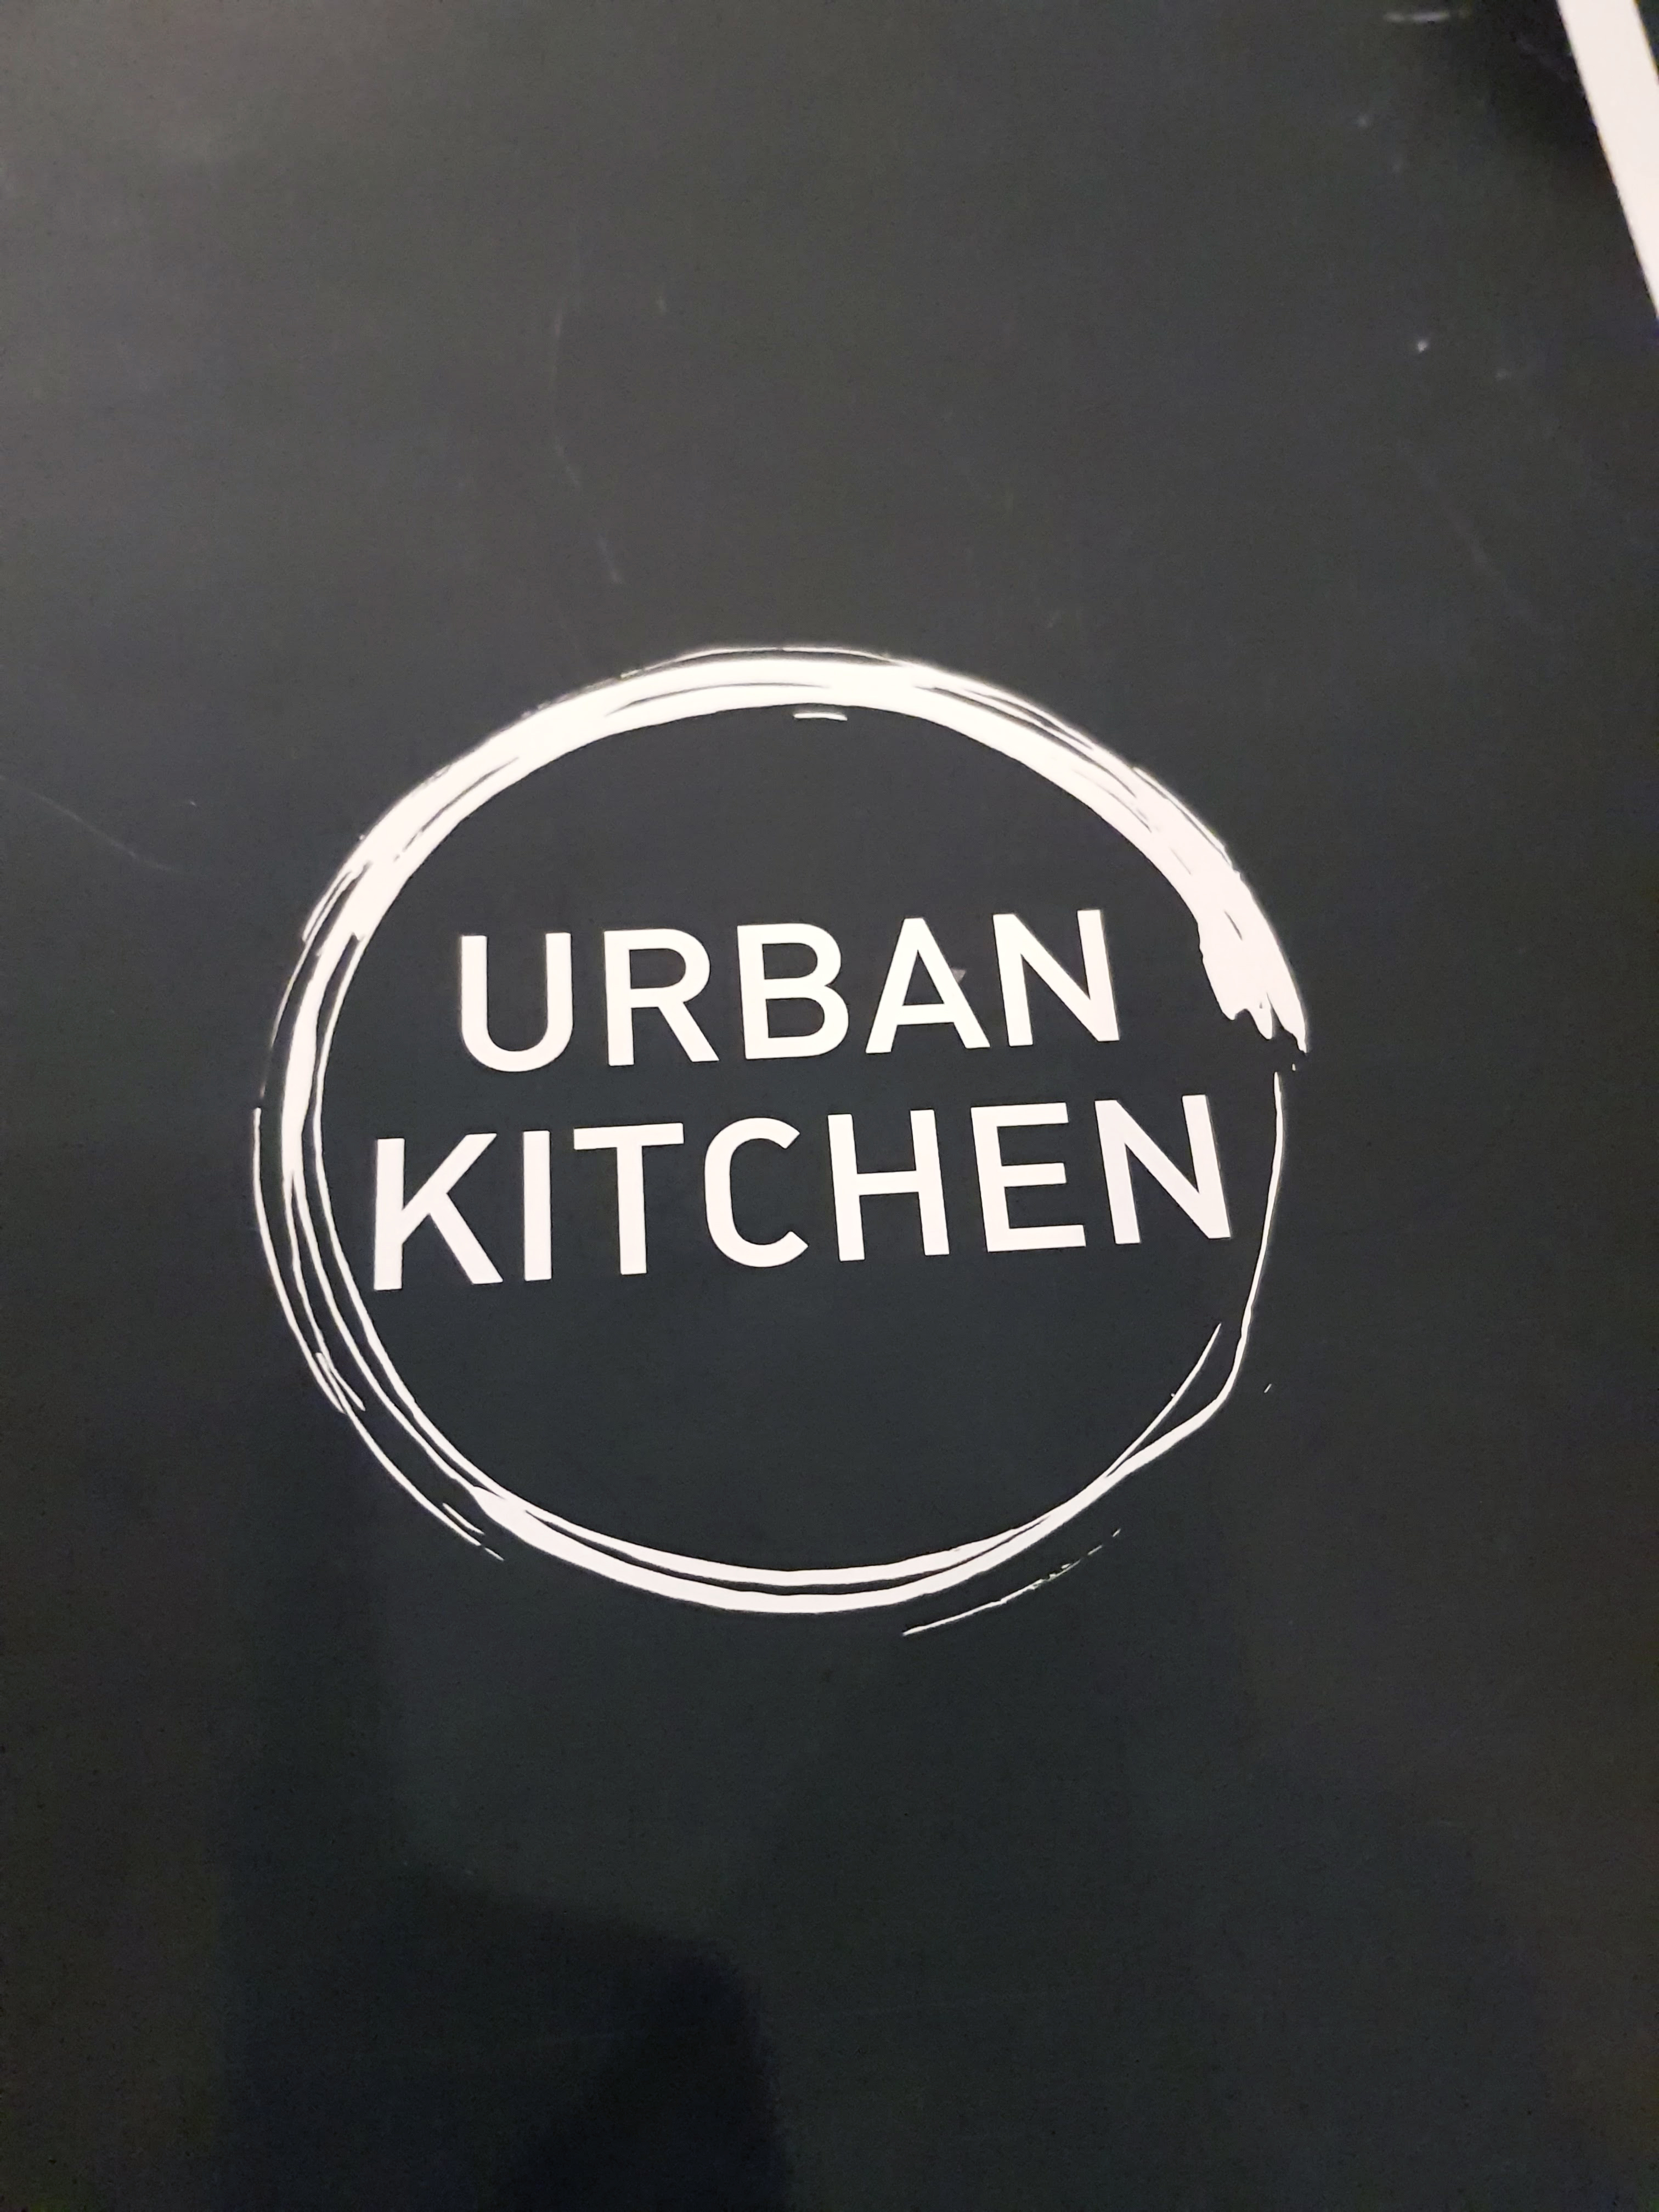 Edited 21 1 - Urban Kitchen and the Demise of Comfort Food